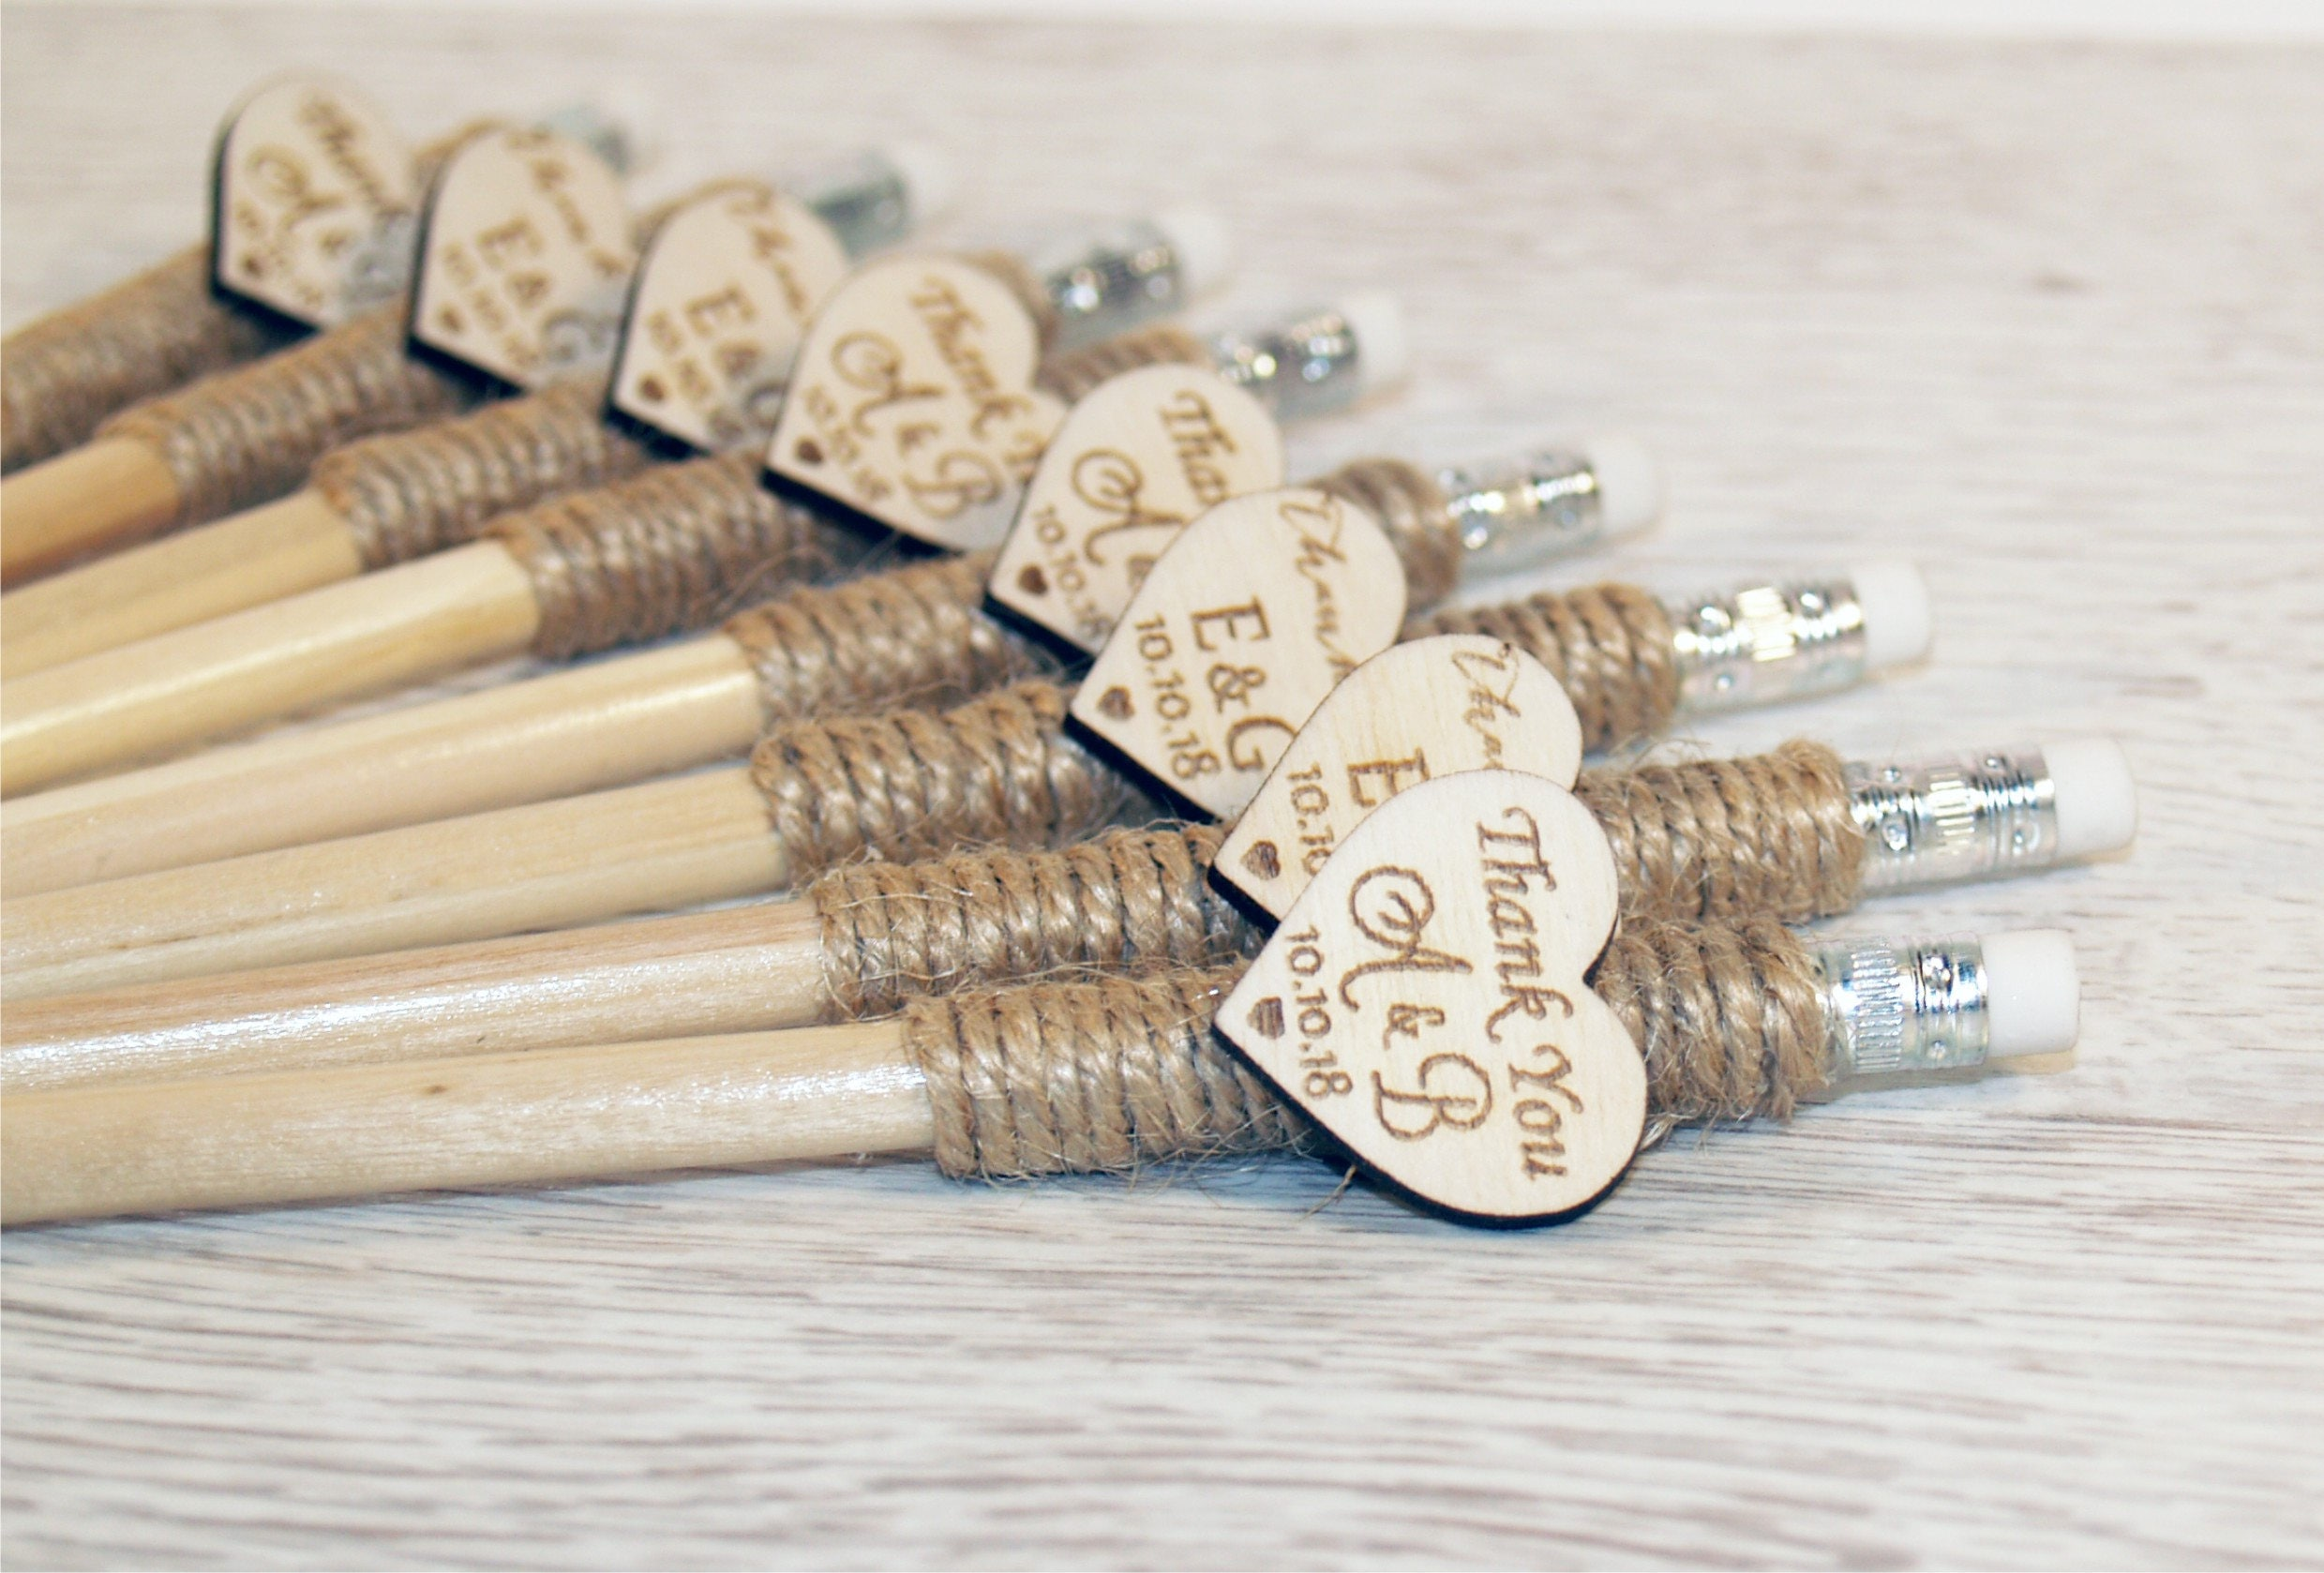 Wedding pencil, Custom pencil, personalized pencil, Engraved pencil ...